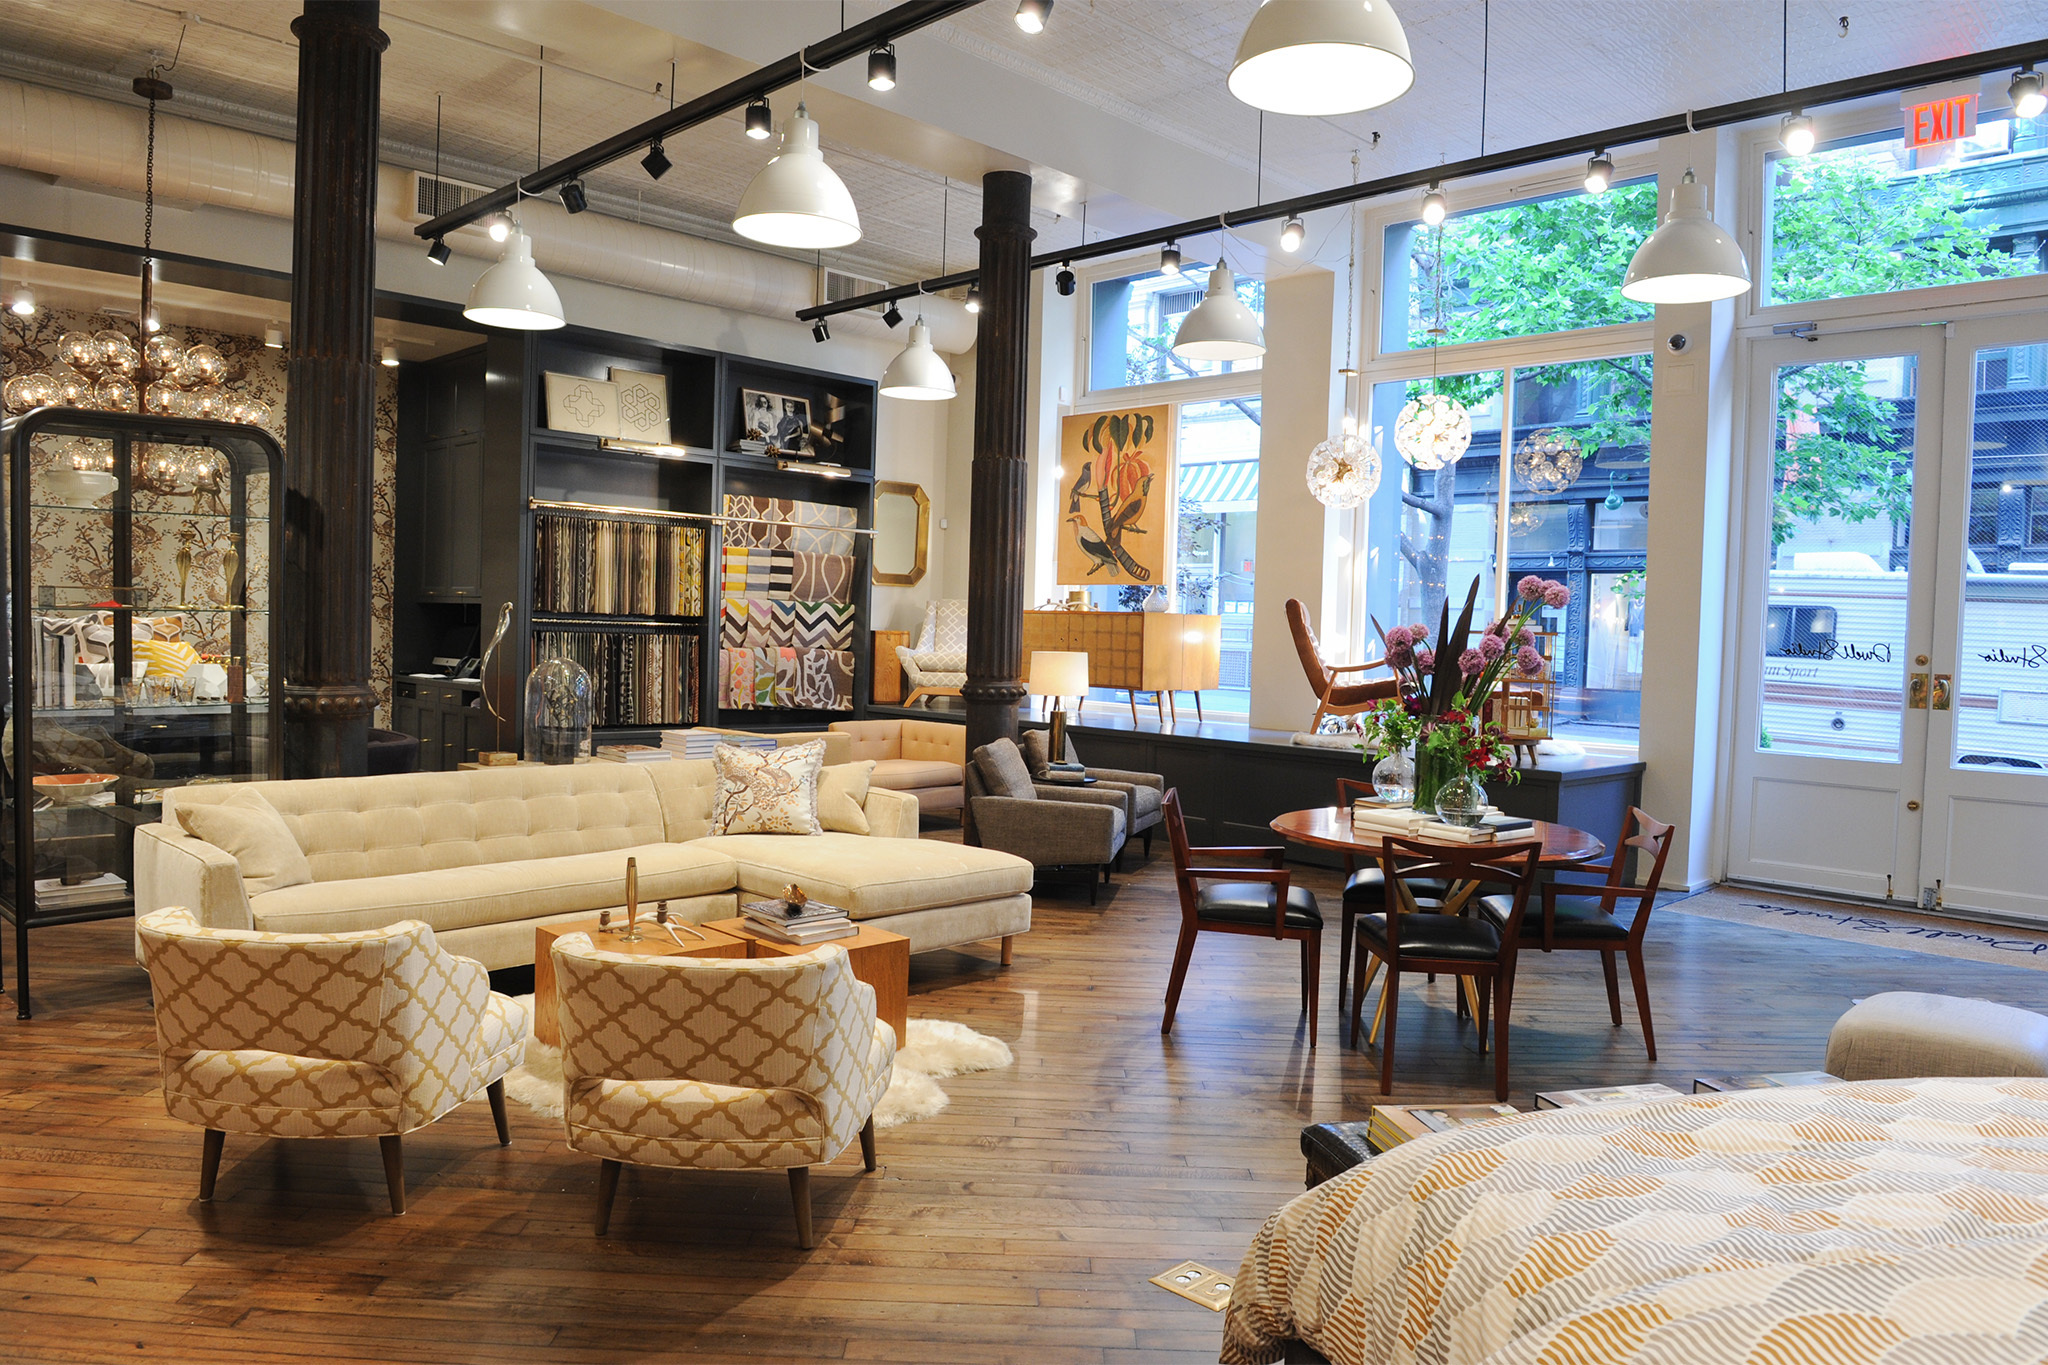 Best Home Decor Stores home decor stores in nyc for decorating ideas and home furnishings